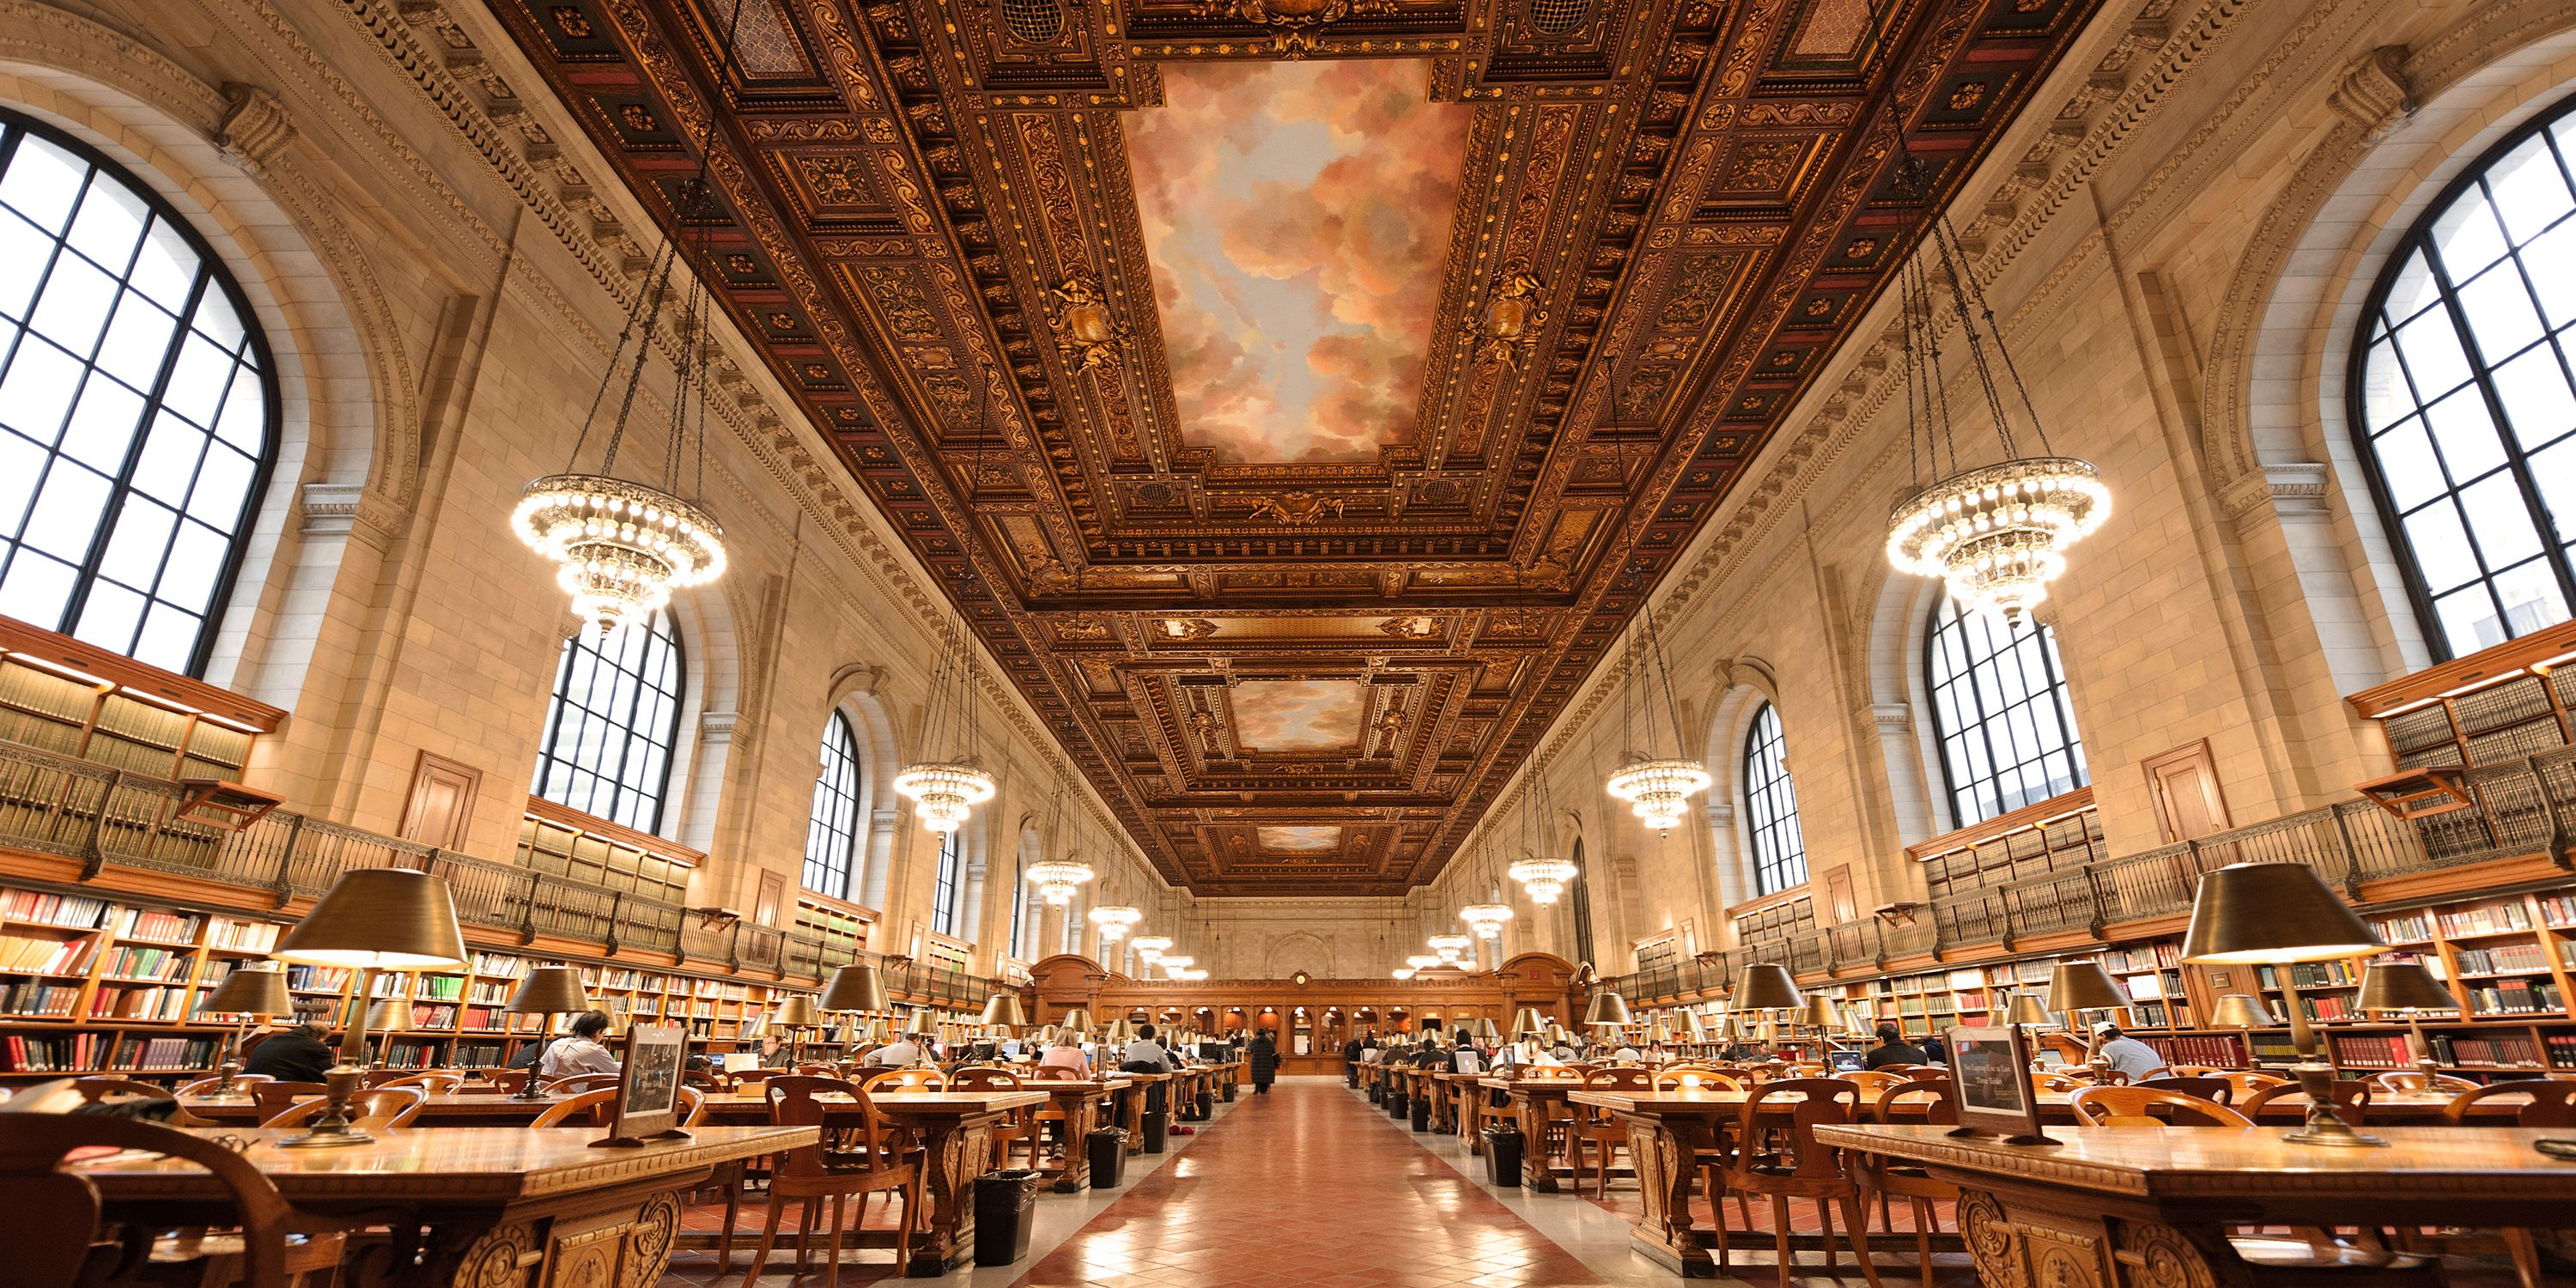 Rose Main Reading Room New York Public Library